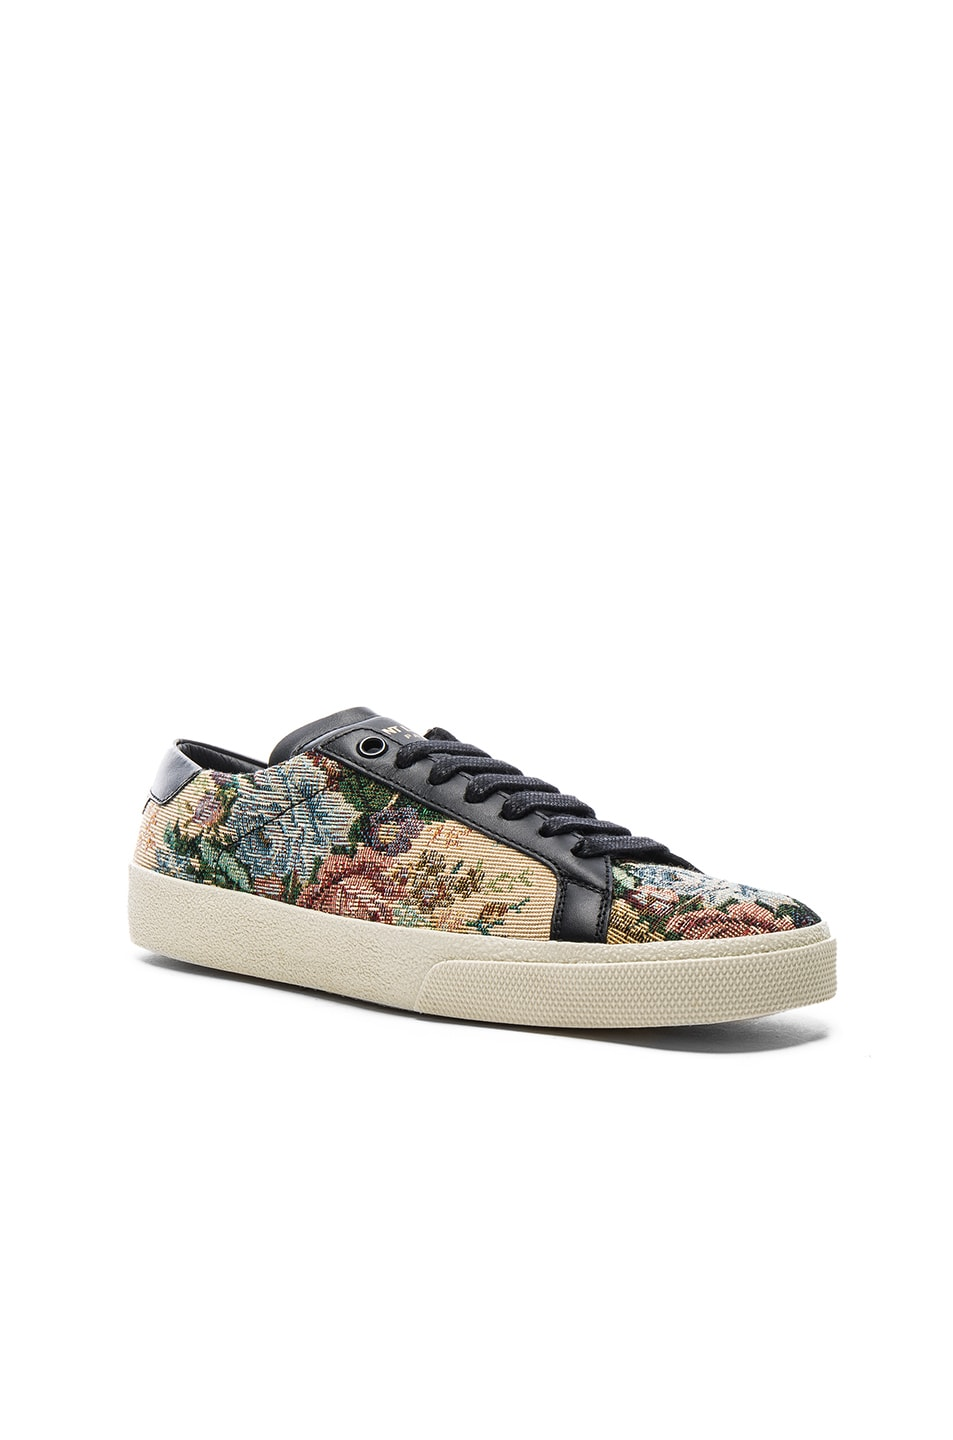 Image 2 of Saint Laurent Court Classic Floral Tapestry Sneakers in Black & Multi